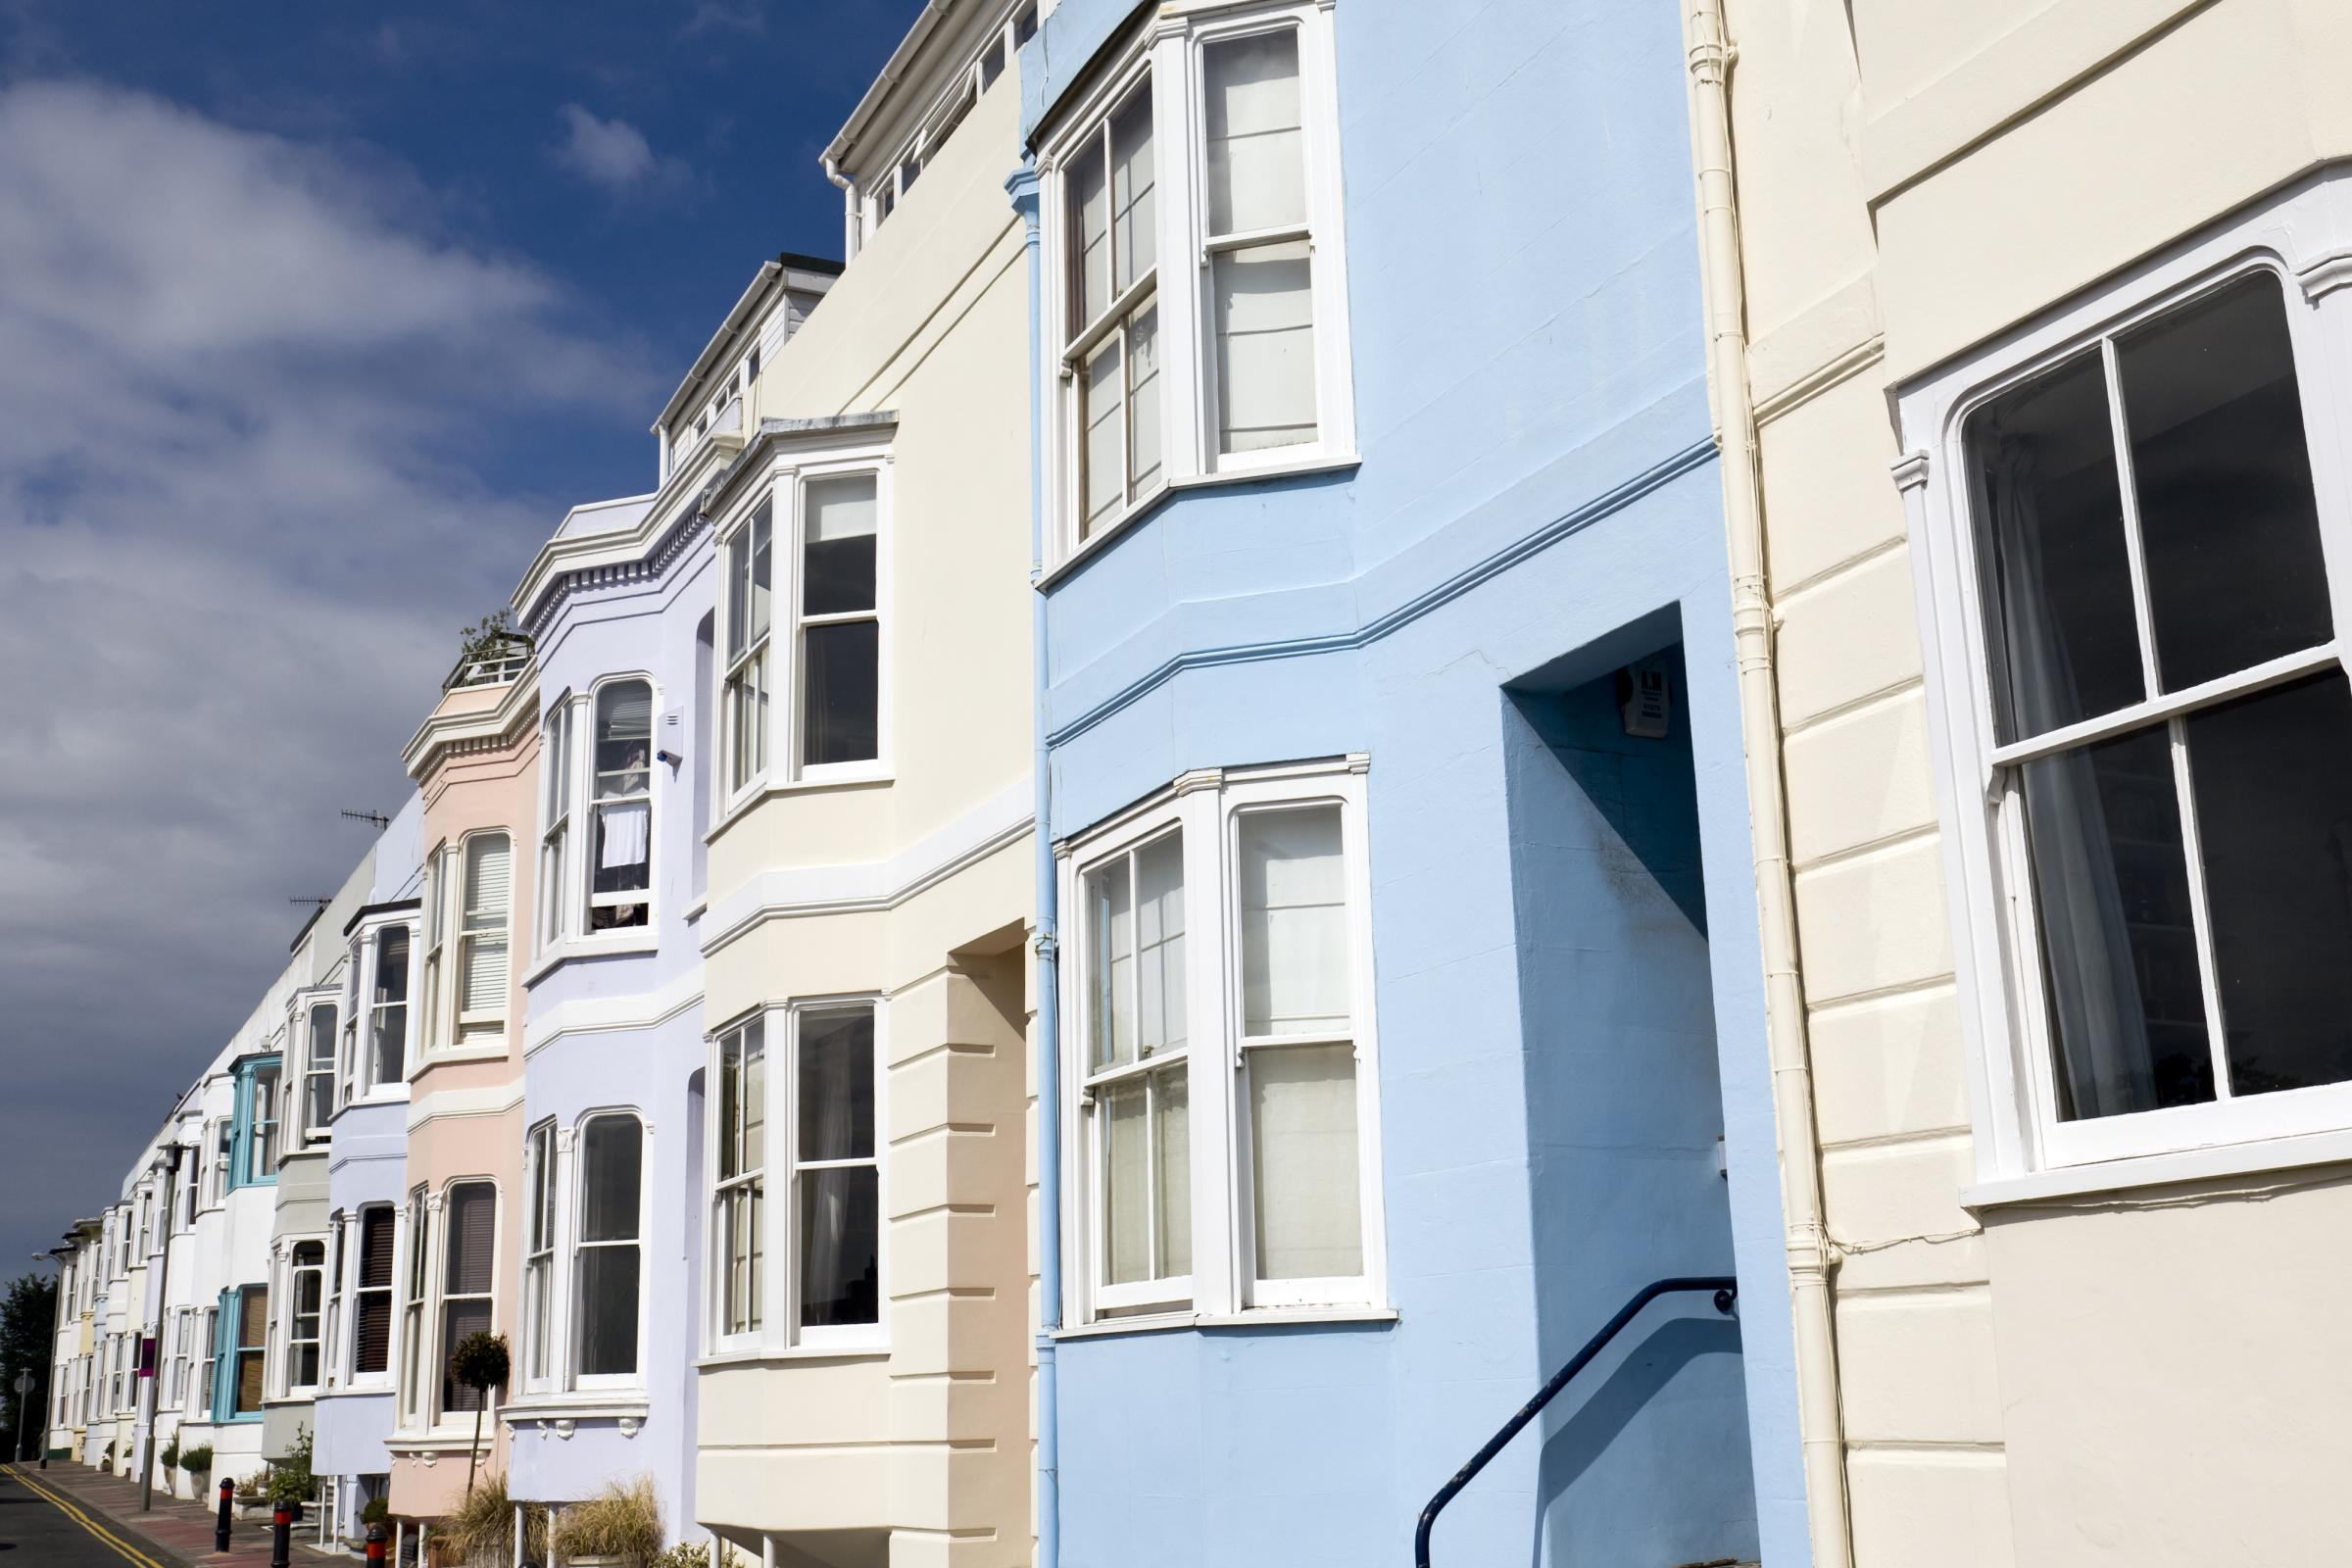 Brighton might be a great place to live in but data shows it's one of the least affordable cities